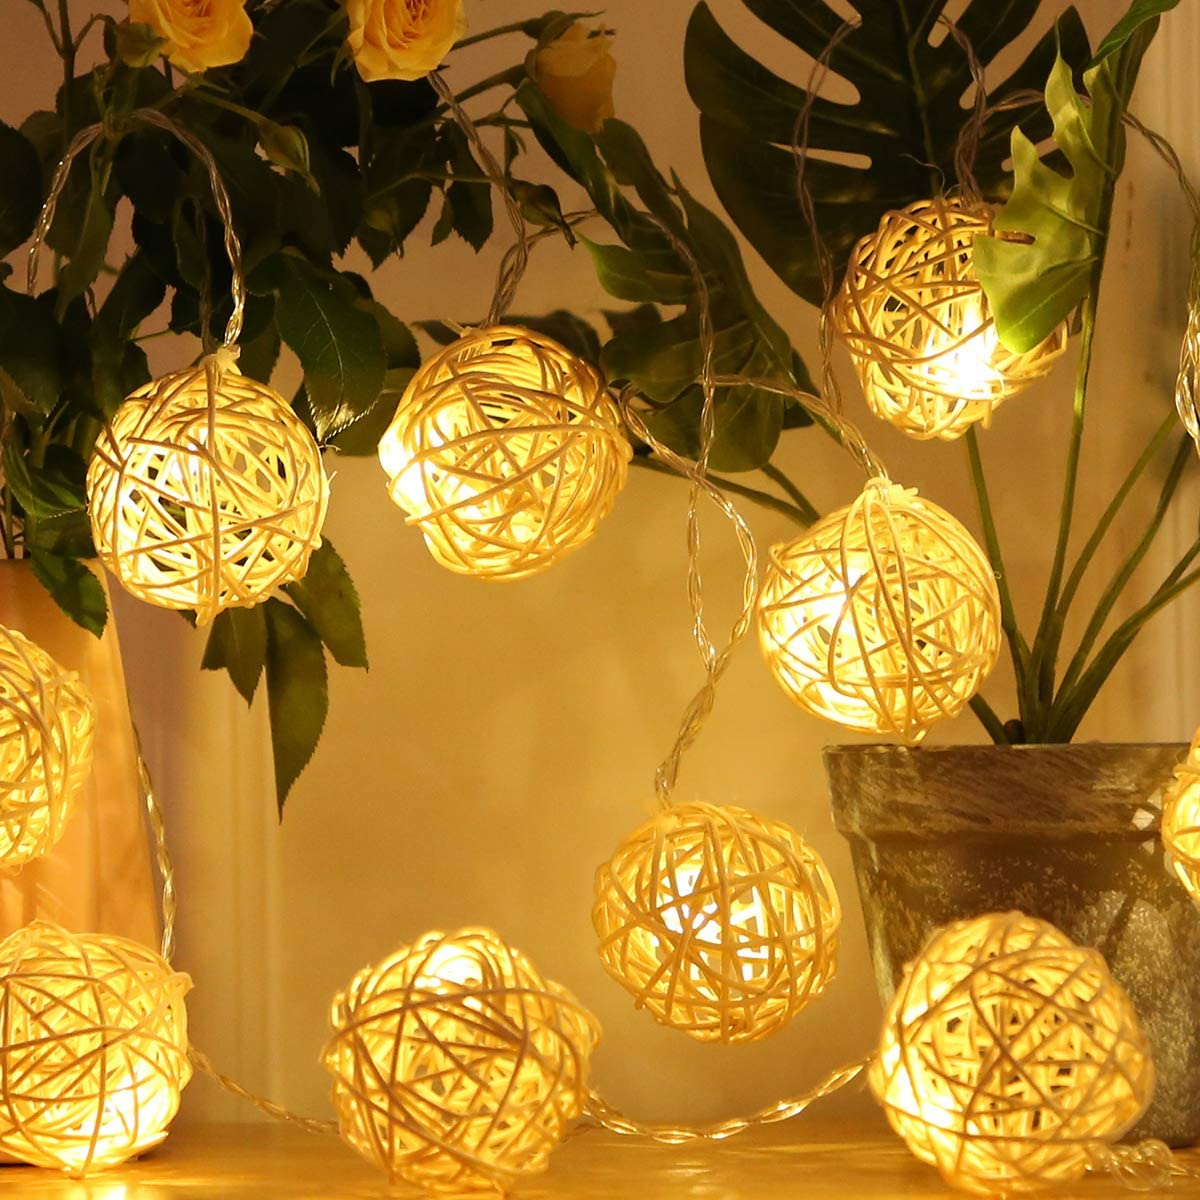 Globe Ball String Lights,WED 100 LED Warm White Fairy Light for Indoor,Bedroom,Curtain,Patio,Lawn,Landscape,Fairy Garden,Home,Wedding,Holiday,Christmastree